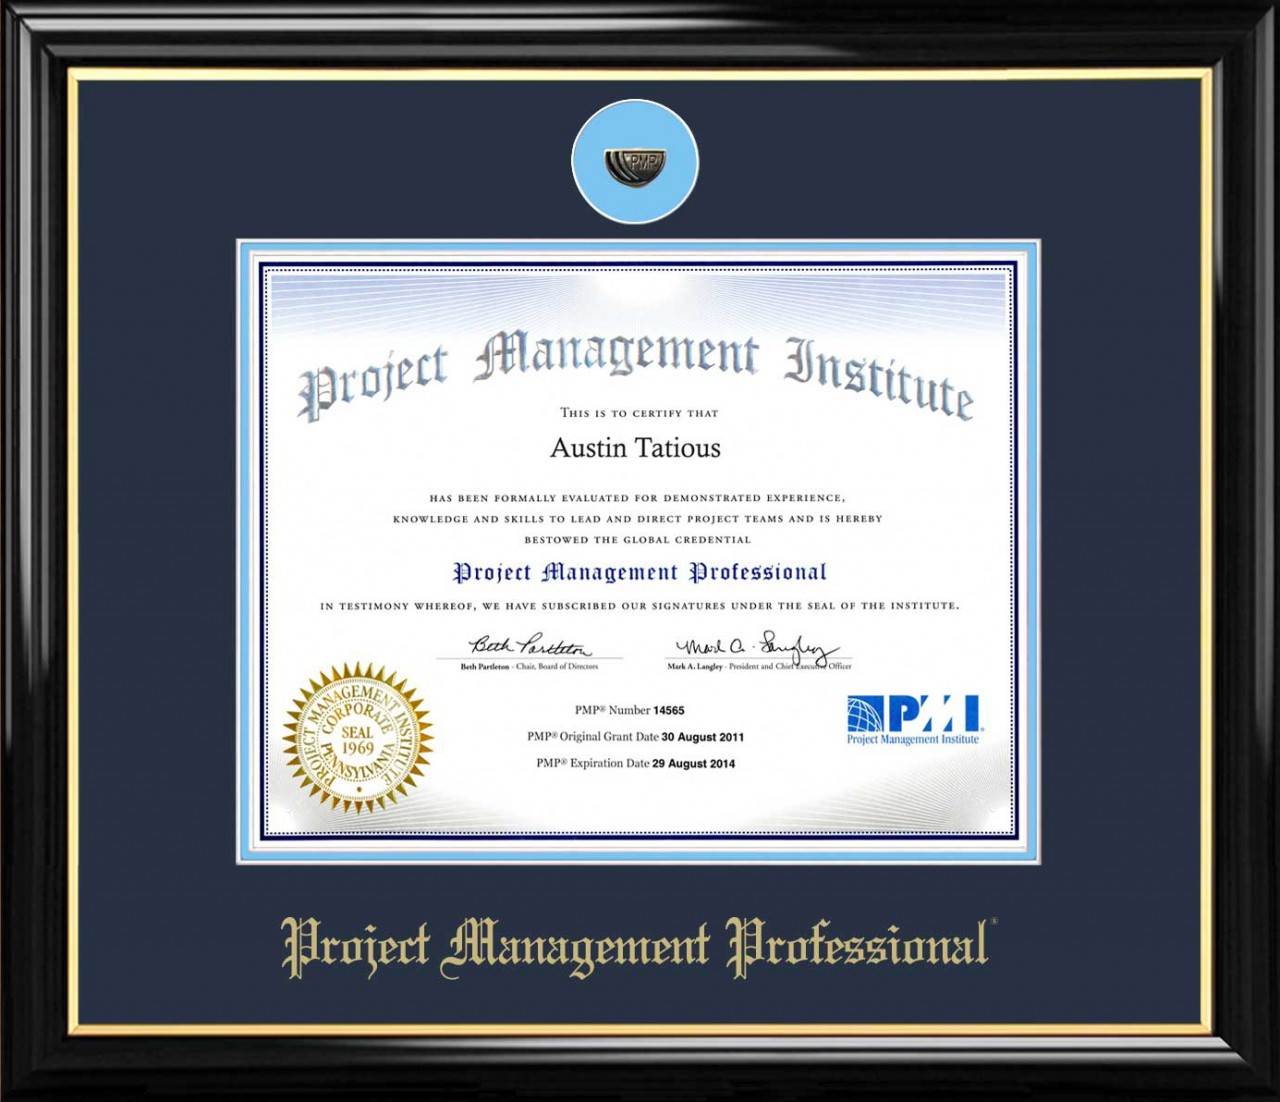 Pmp Certificate Frame Black With Navy Mat Lapel Pin Opening